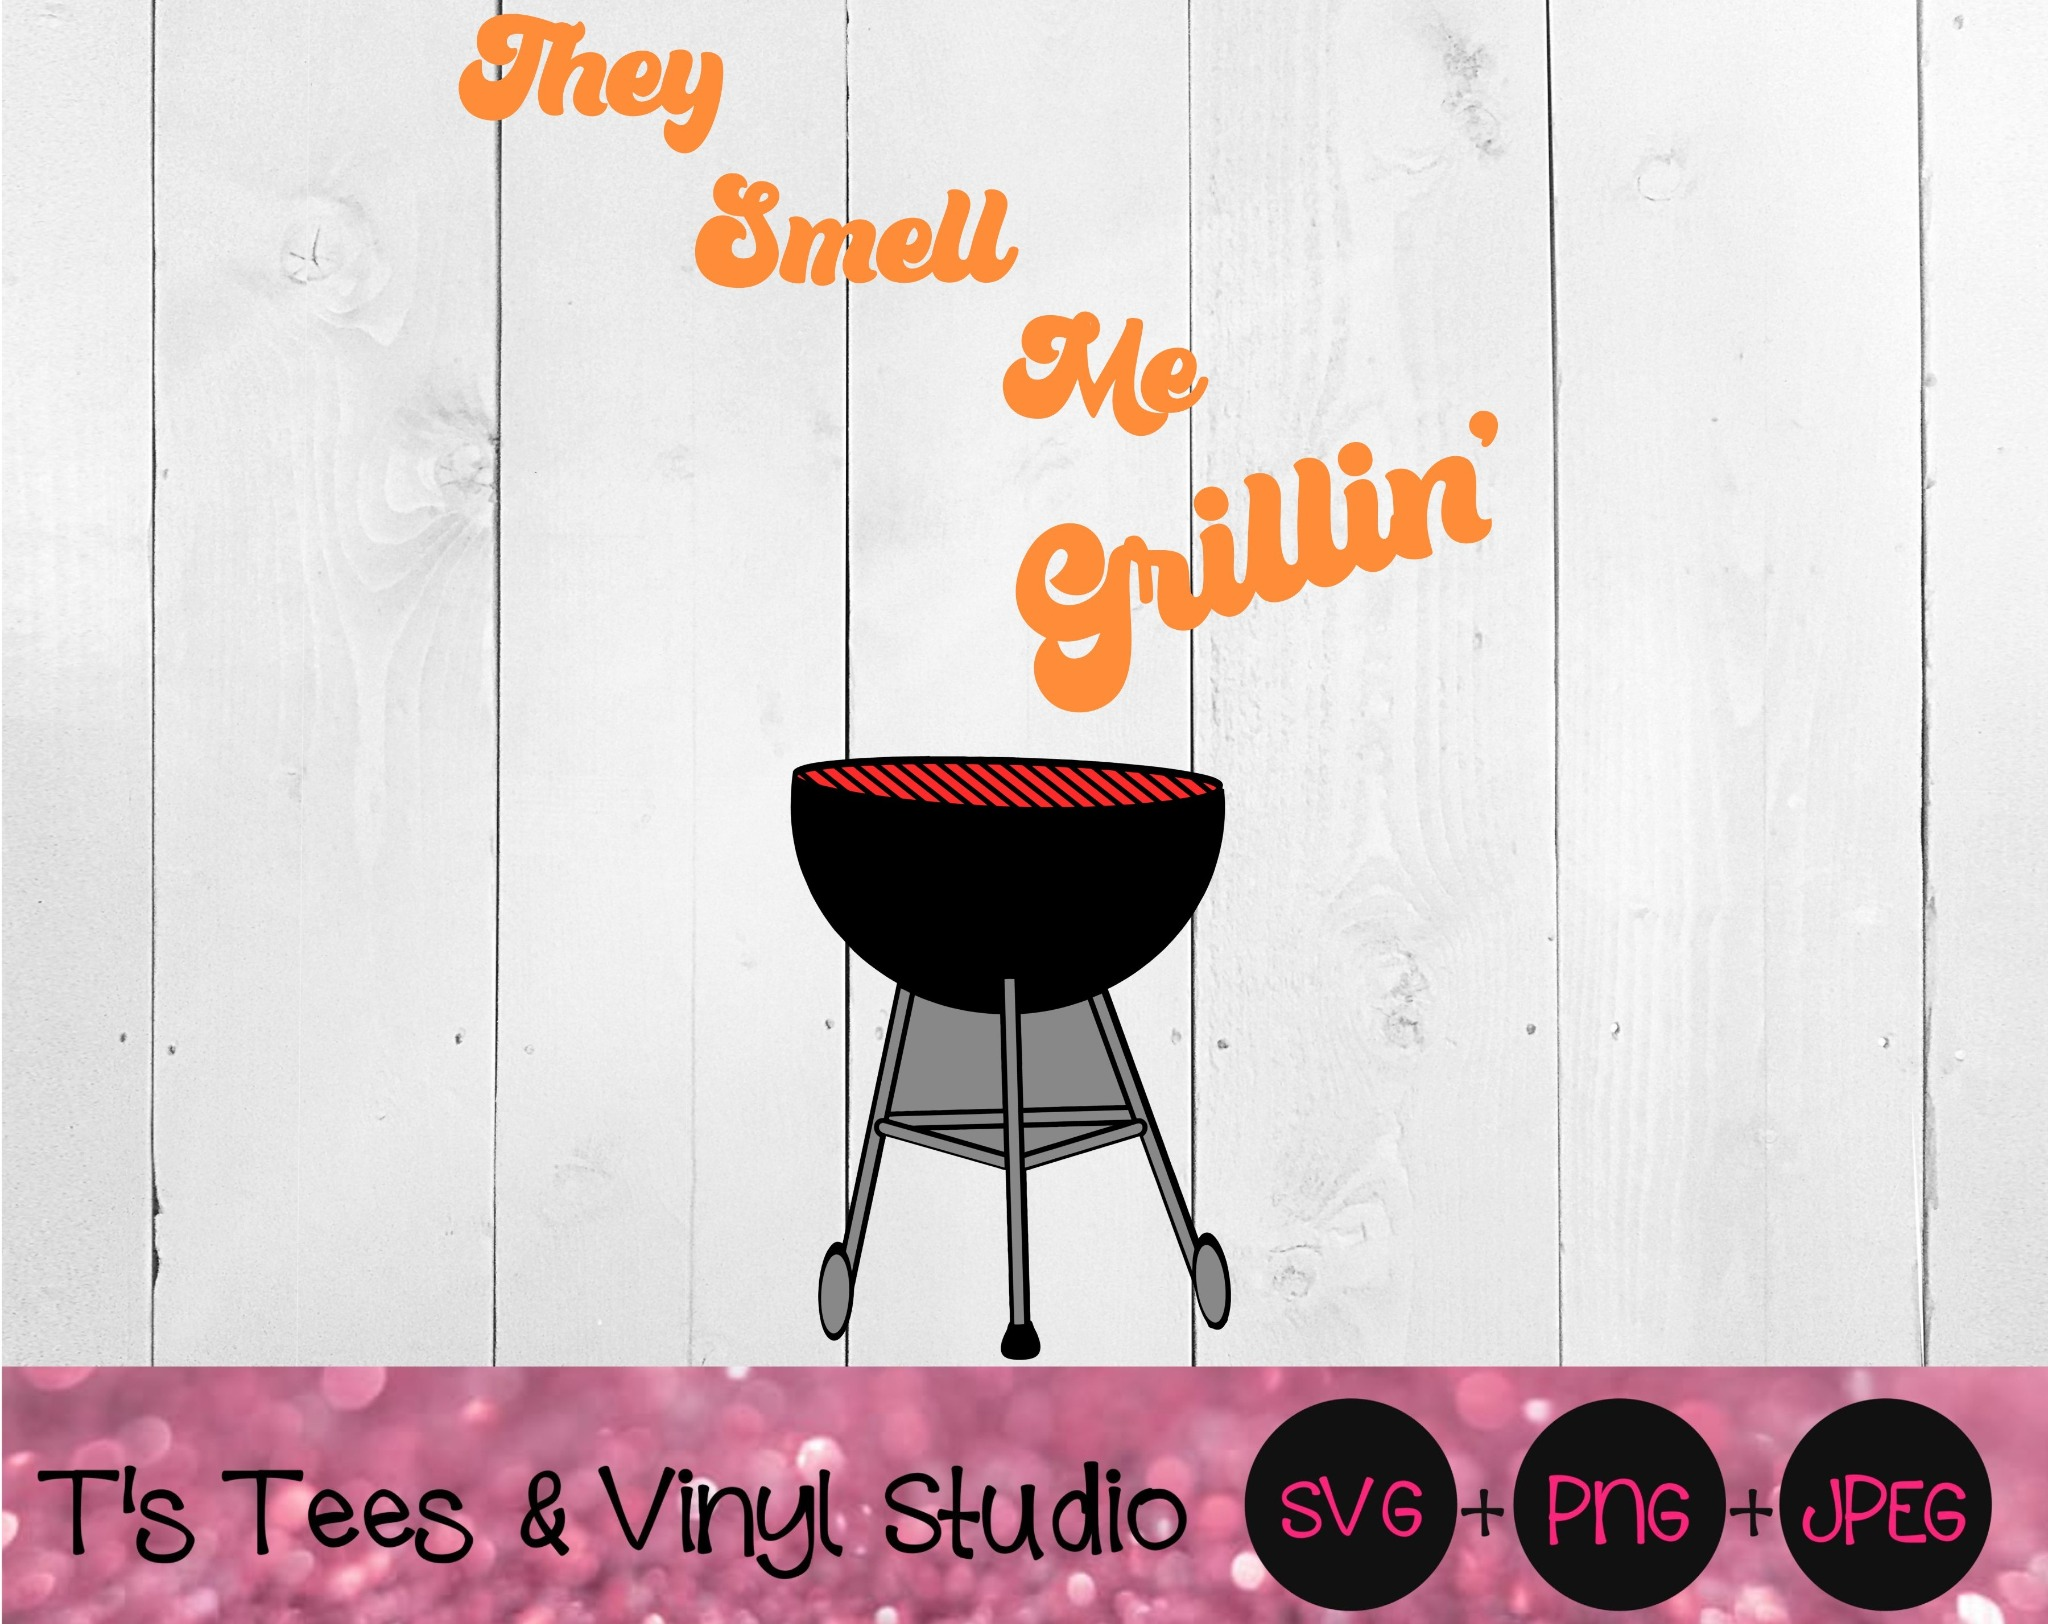 Barbecue SVG, BBQ png, Bar-B-Q Jpeg, Grillin Svg, They Smell Me Grillin SVG, Cook Out Svg, Digital D